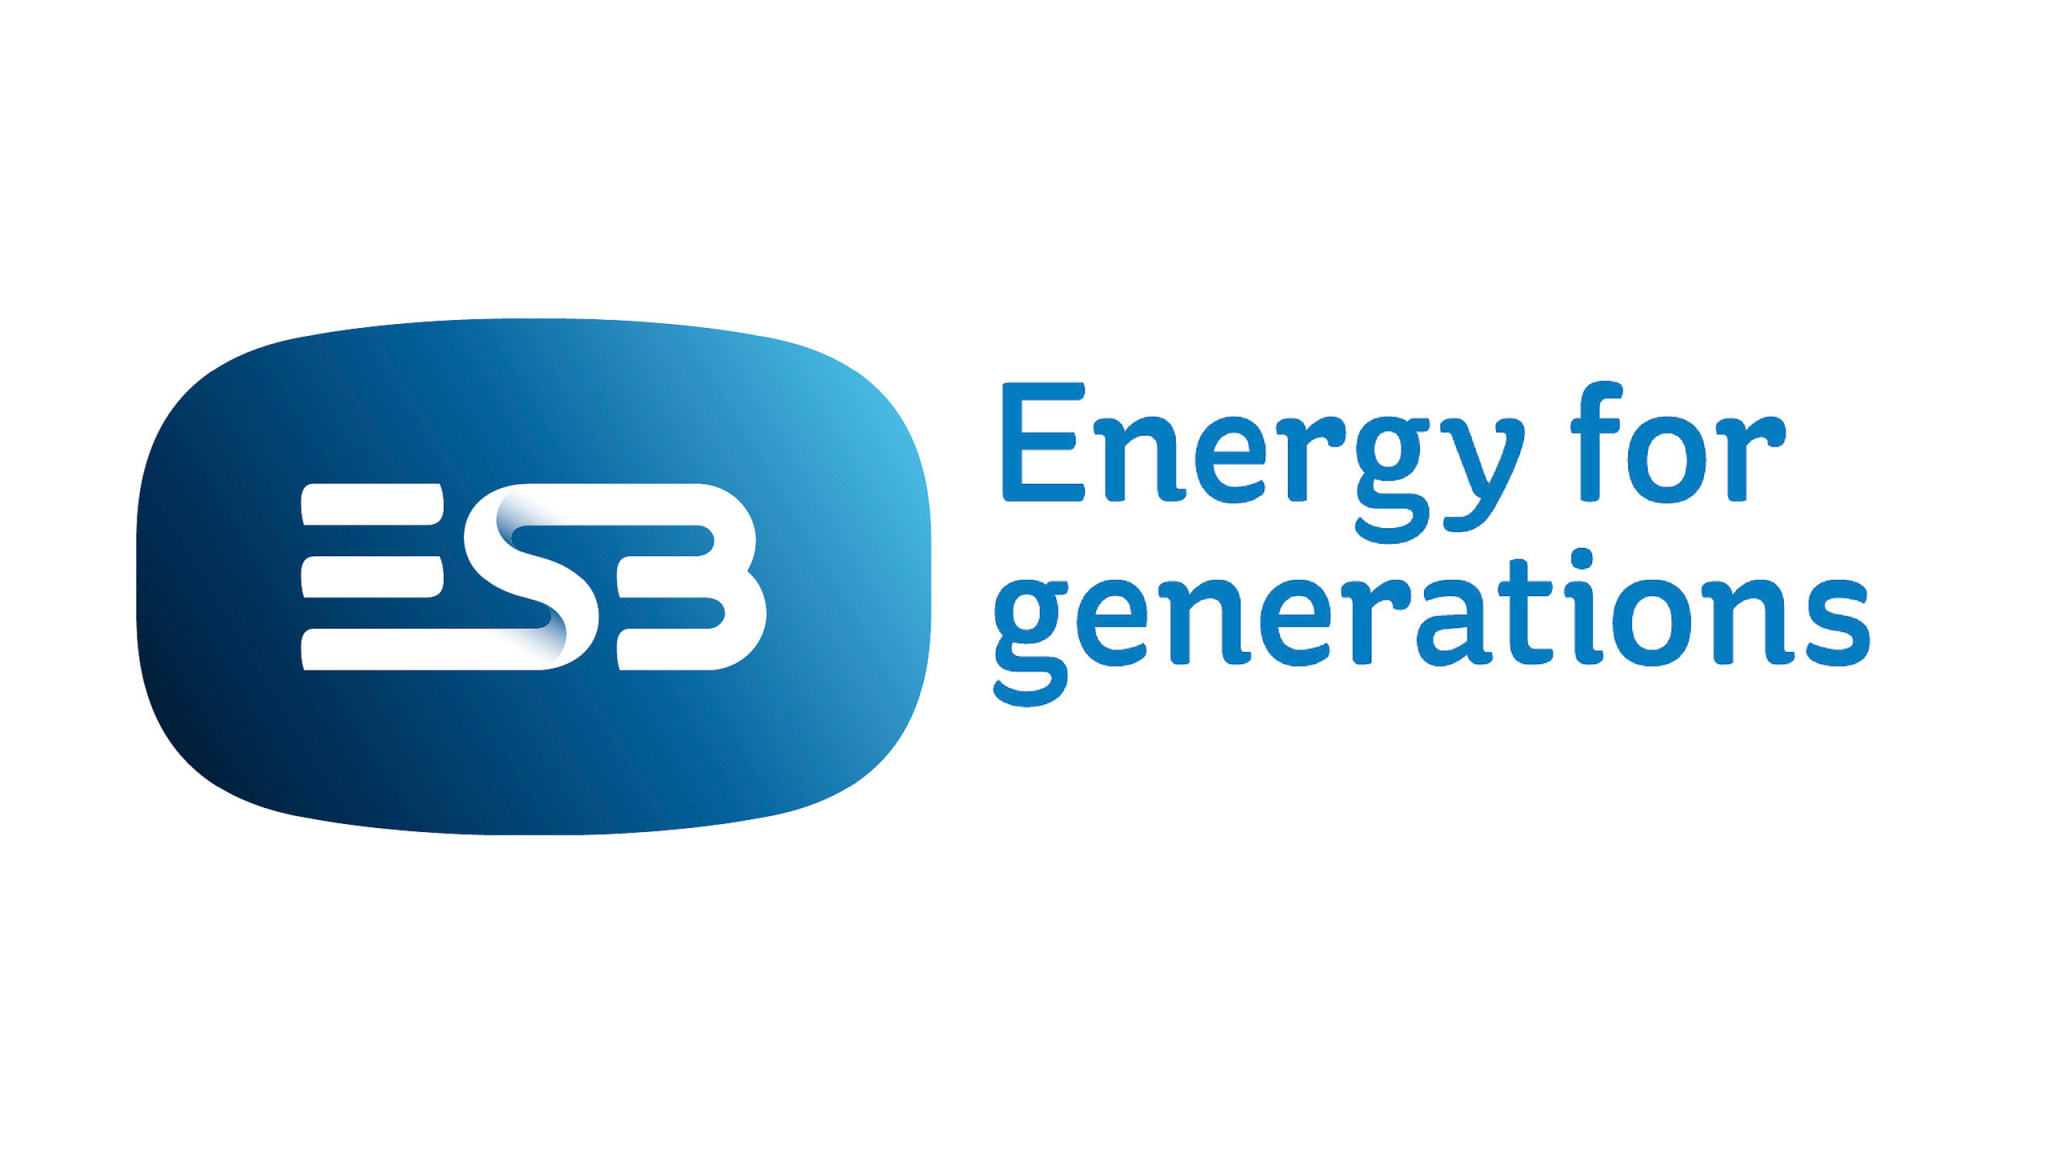 ESB Energy for Generations 2015